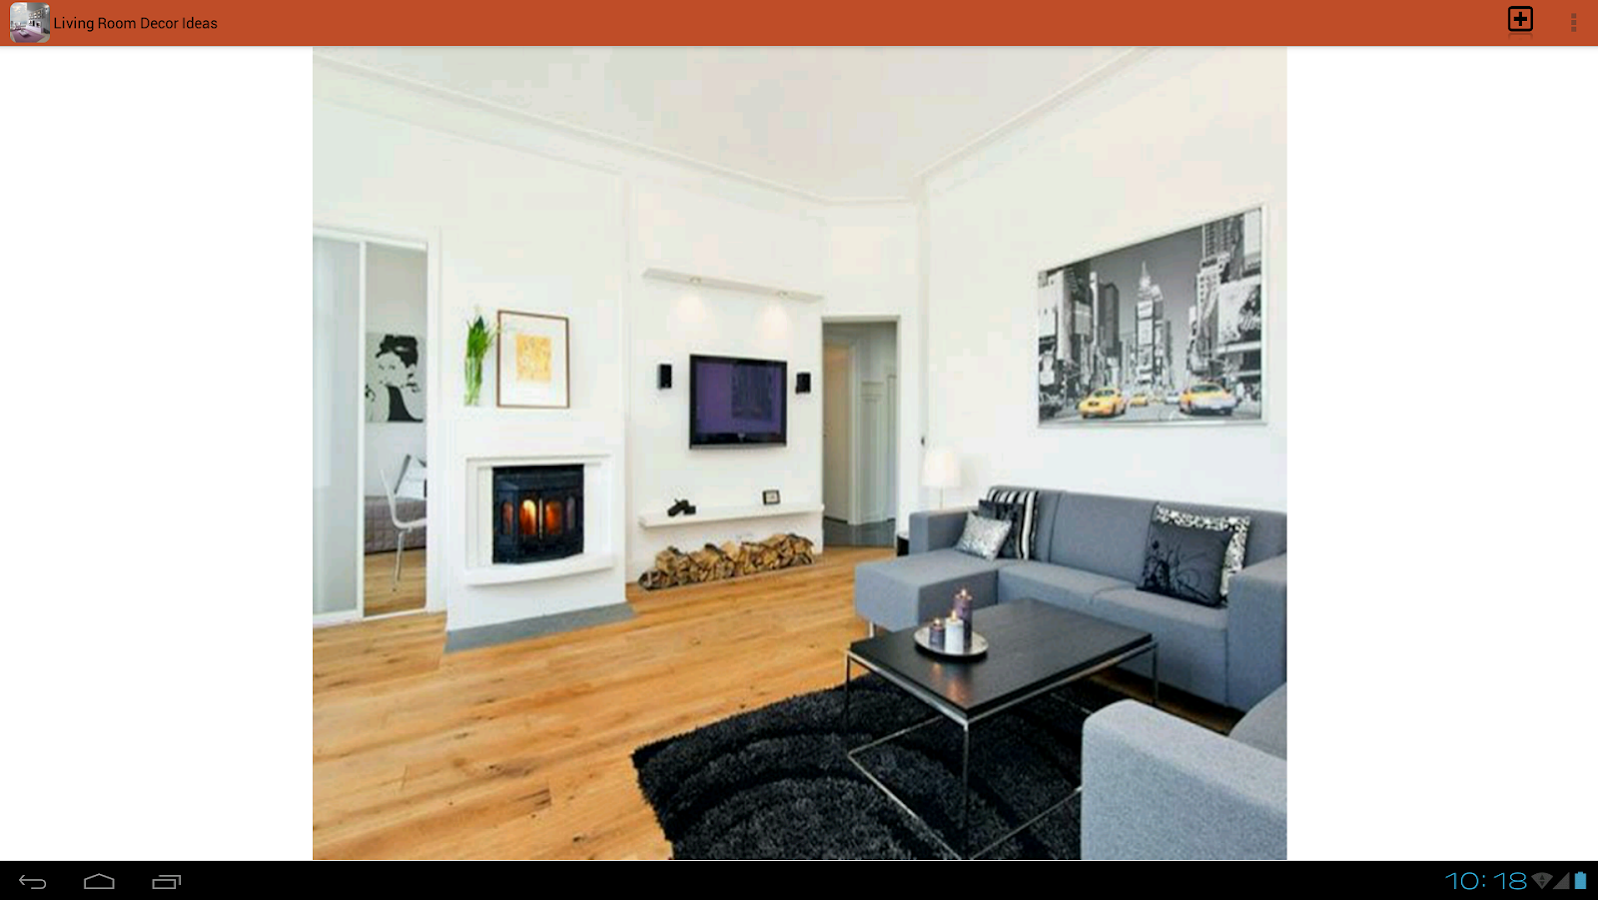 Living room decor ideas android apps on google play for Design my room app